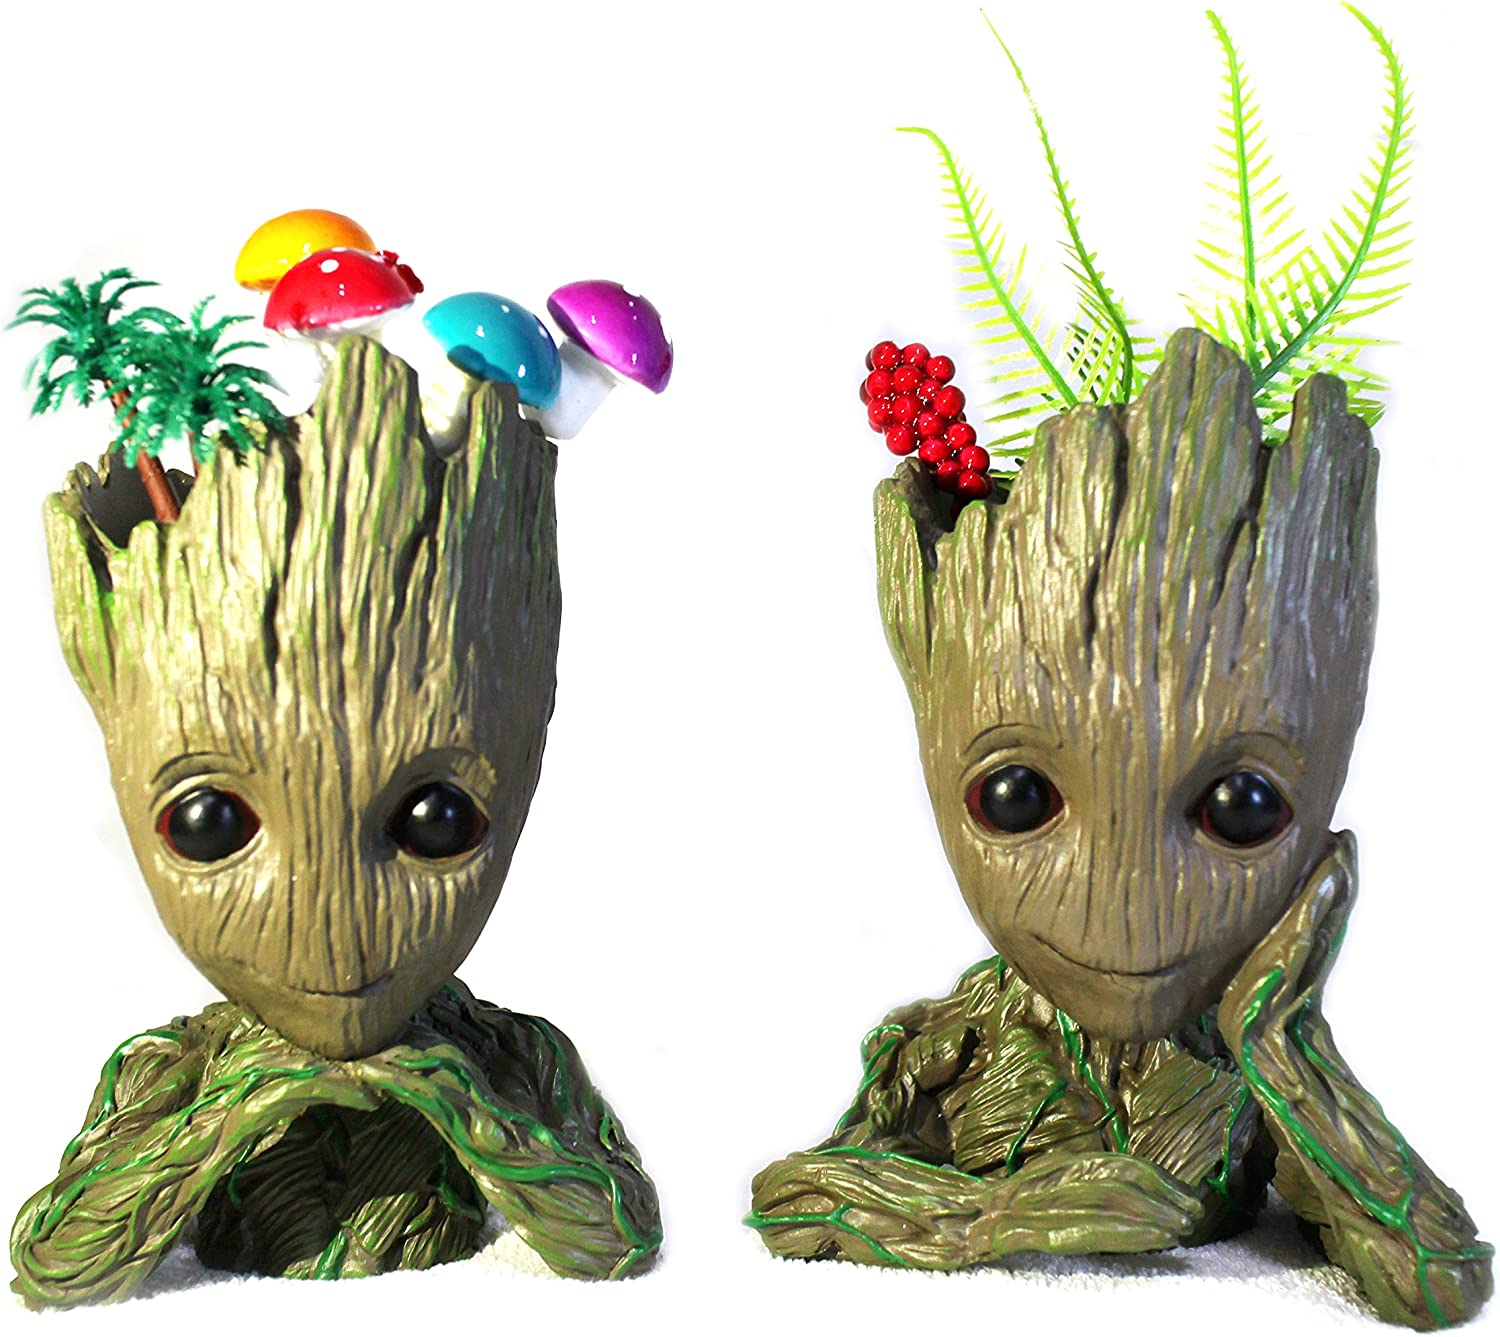 Amazon Com Cartoon Double Tree Man Flowerpot Cute Garden Pots Succulents Planters Gift For Kids Garden Outdoor Buy the best and latest tree cartoon on banggood.com offer the quality tree cartoon on sale with worldwide free shipping. cartoon double tree man flowerpot cute garden pots succulents planters gift for kids